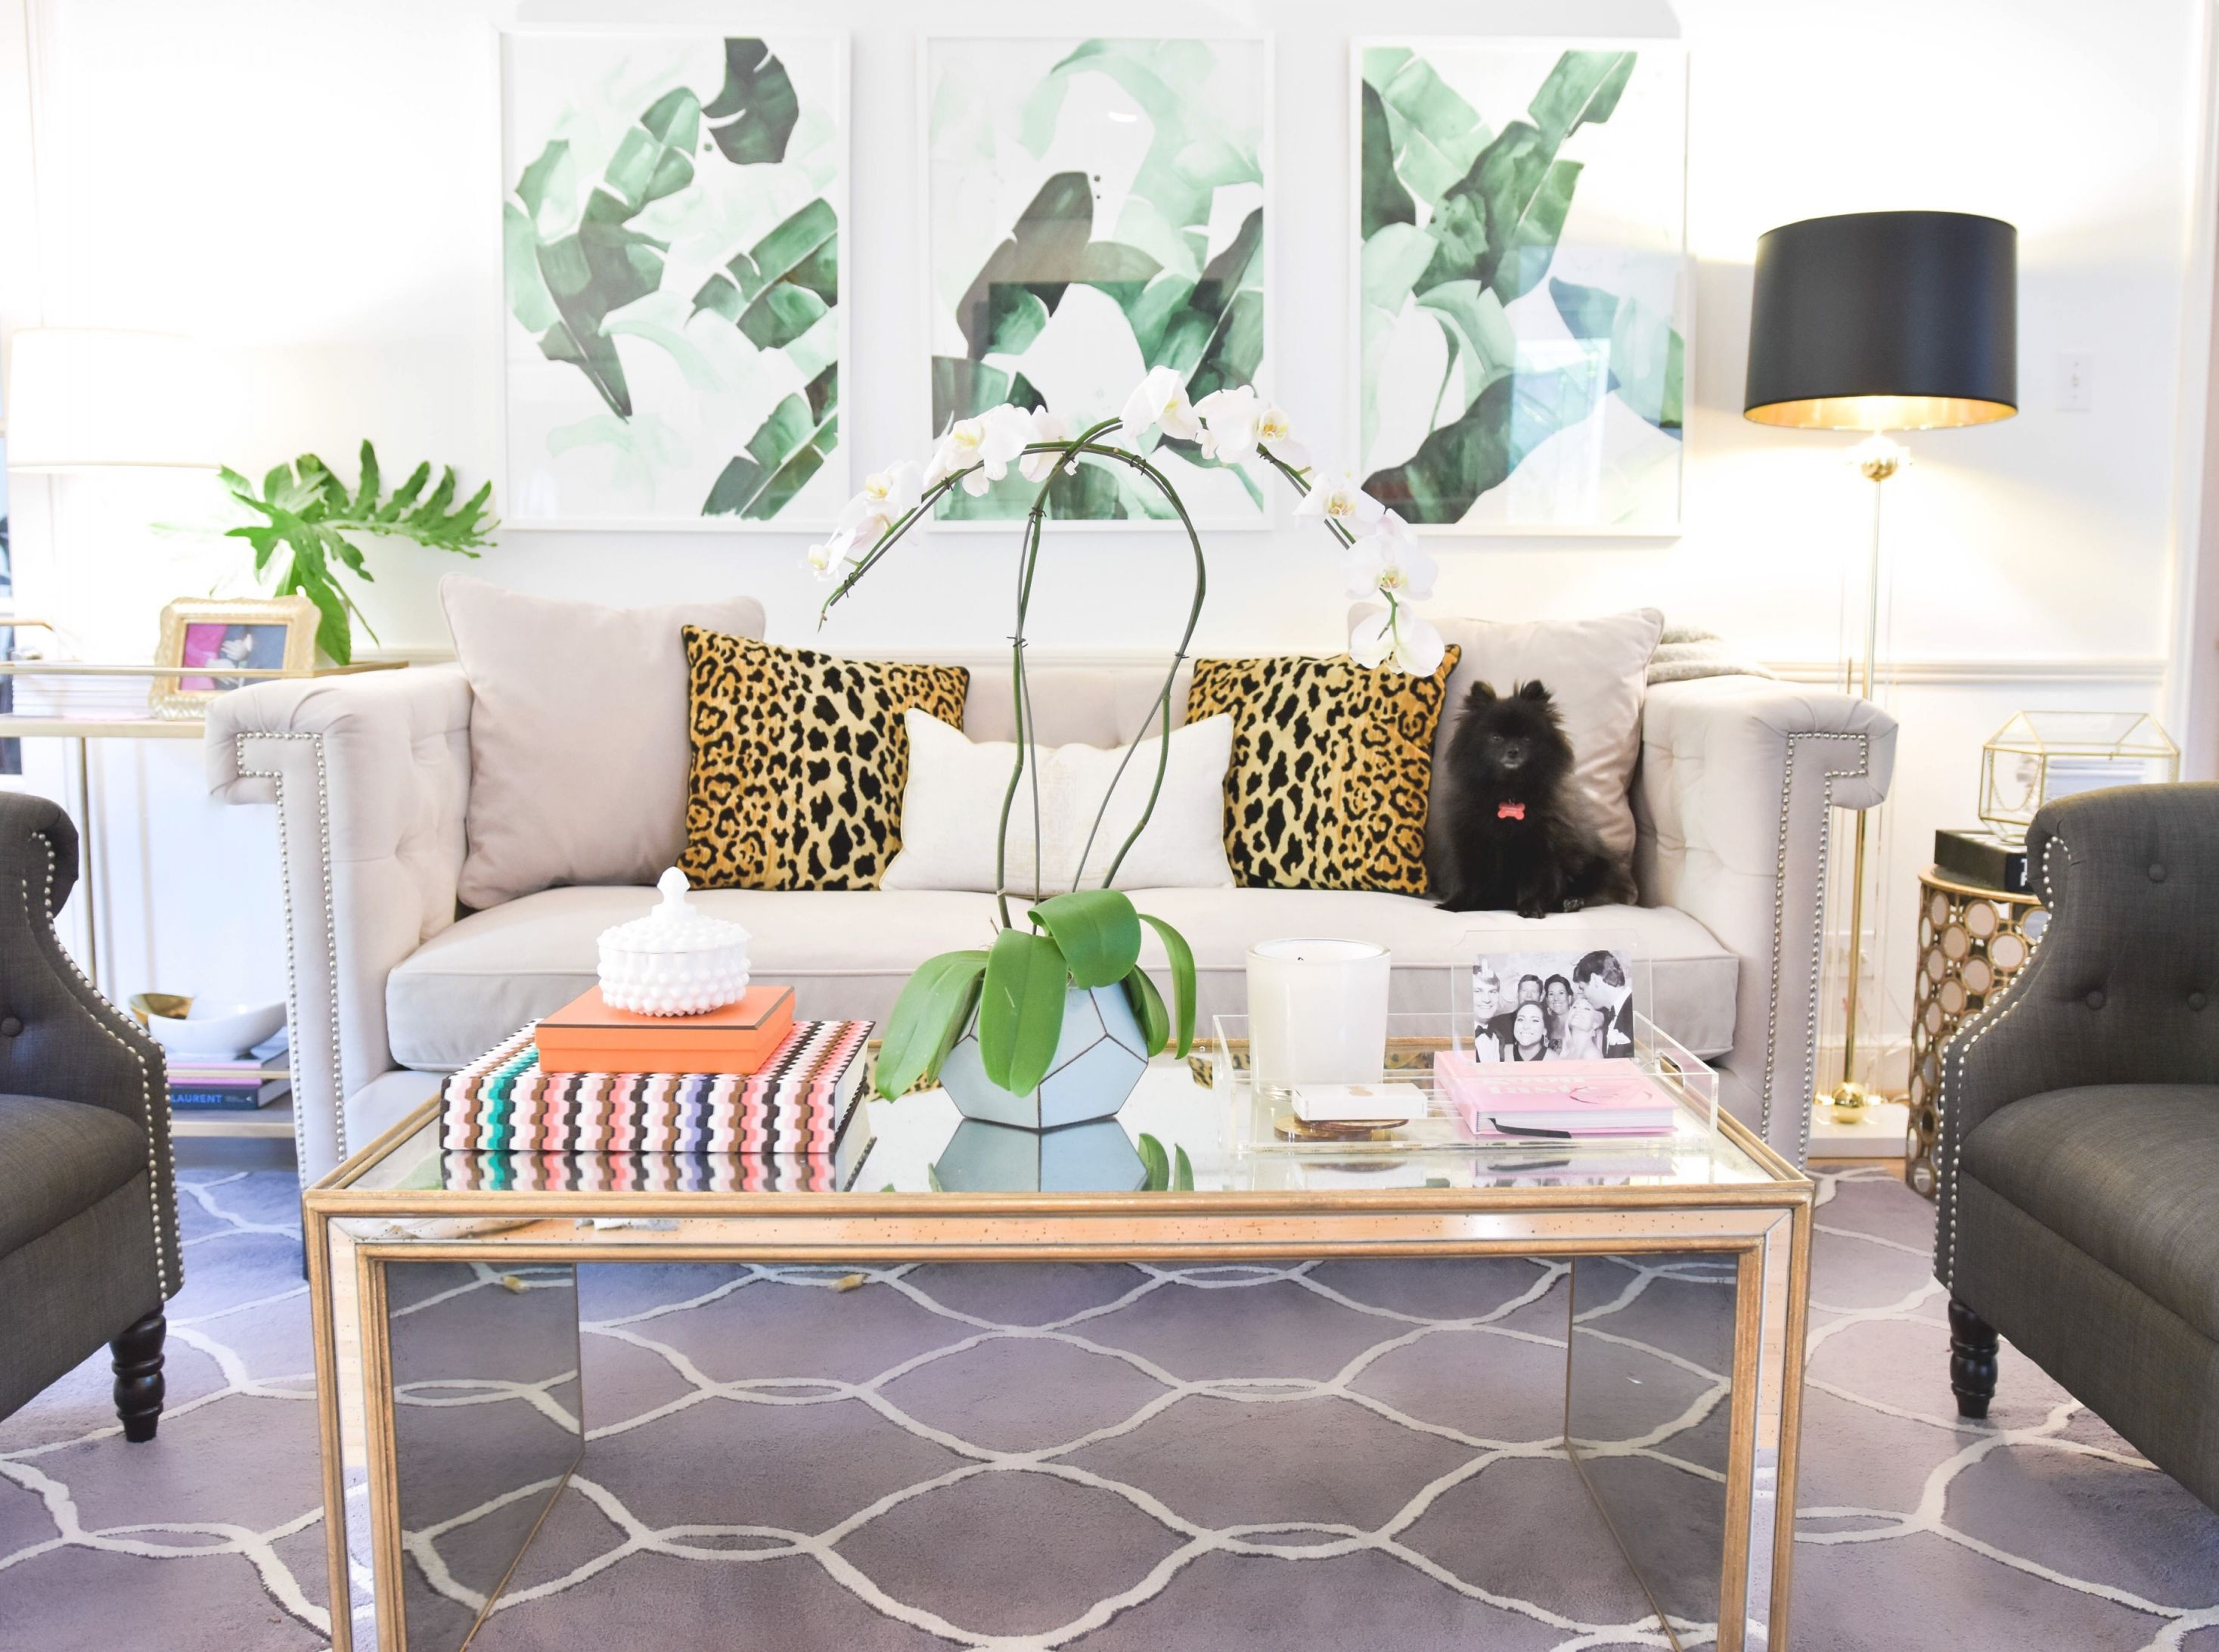 Quick Living Room Update! | Murphy's Law for Unique Animal Print Living Room Decor